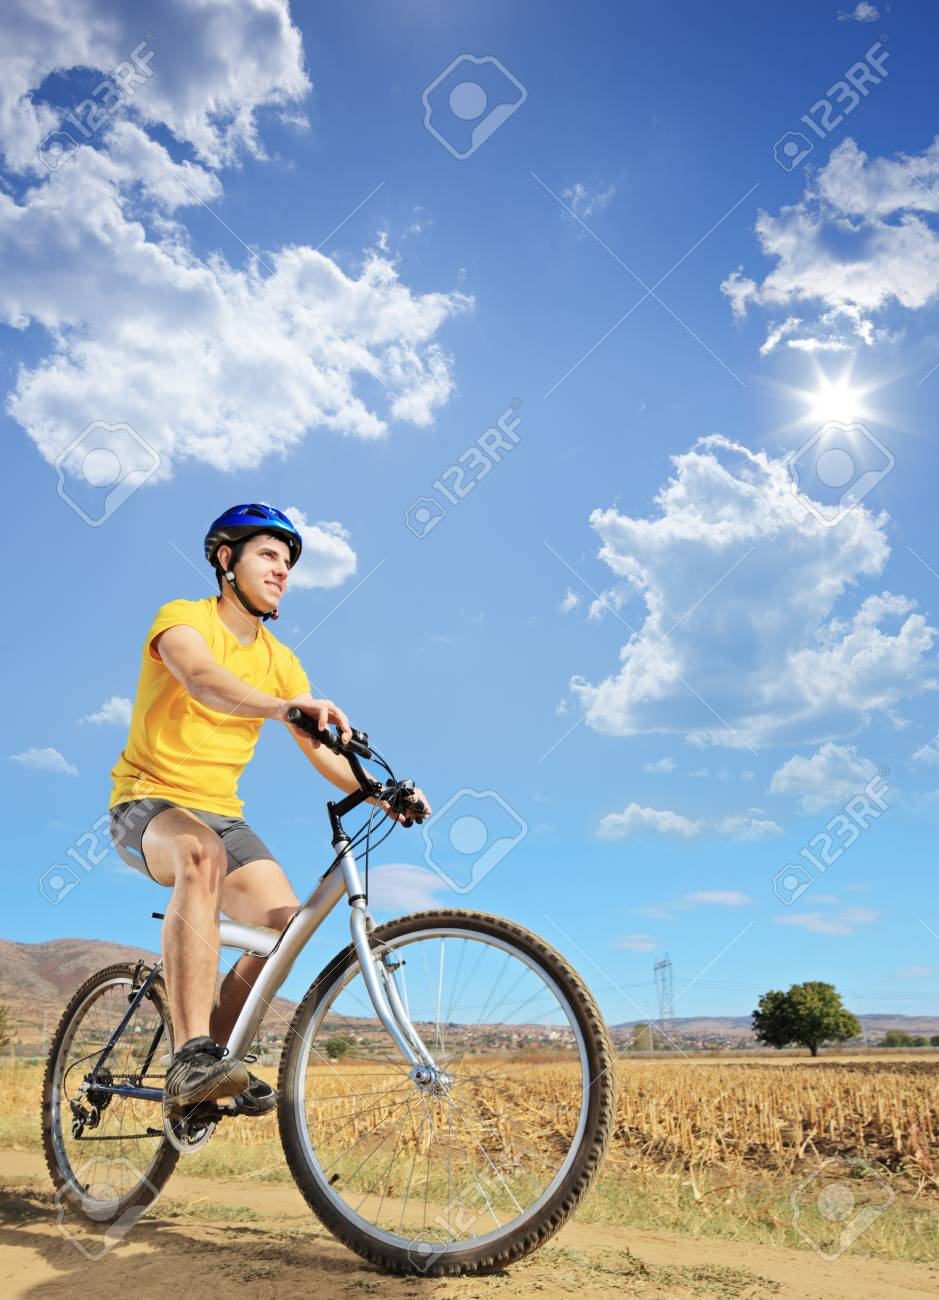 A young male in yellow shirt riding a bike on a sunny day in Macedonia Stock Photo - 16064942